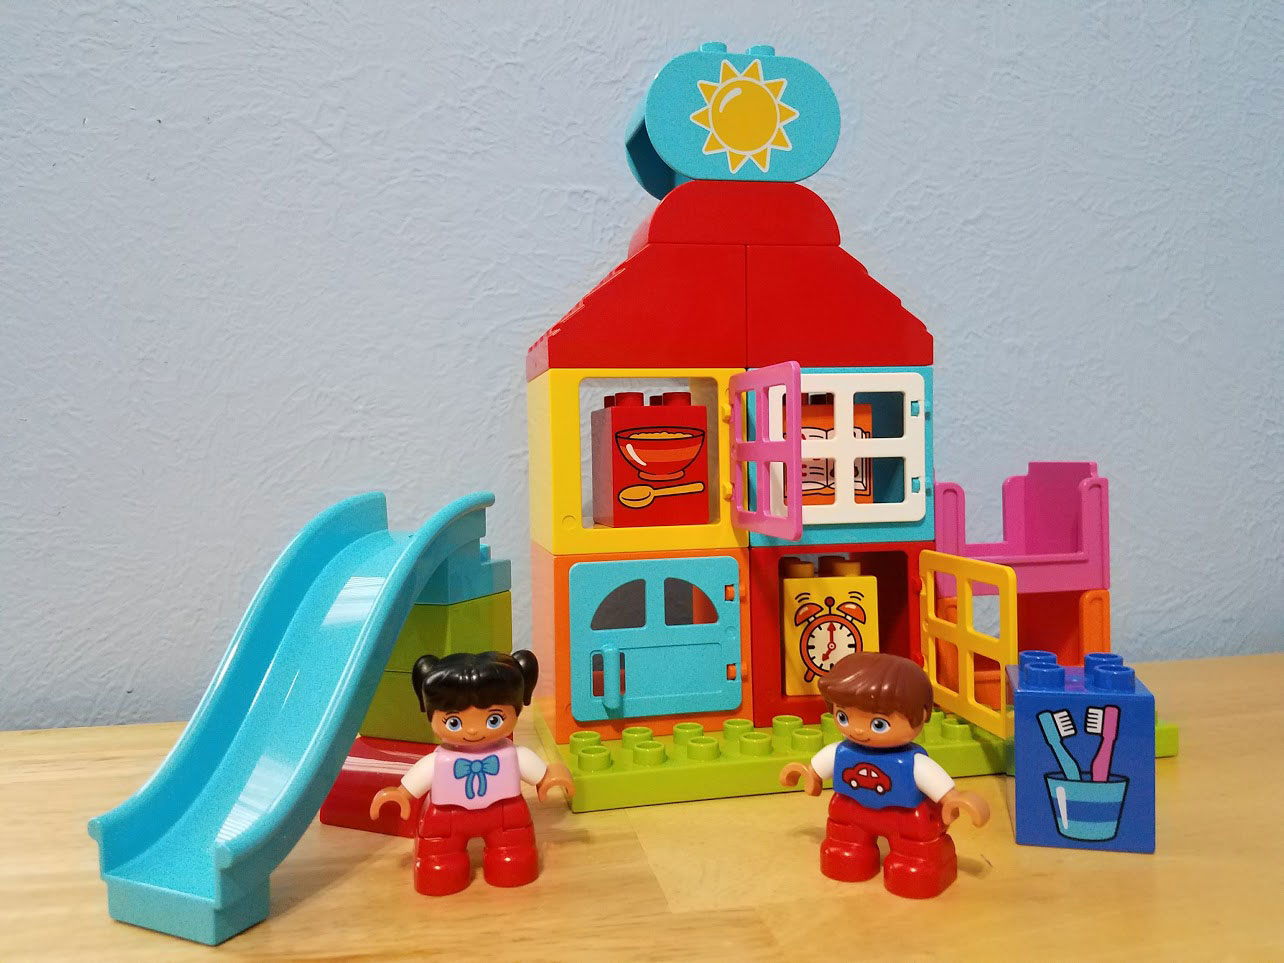 Lego Duplo Playhouse Set